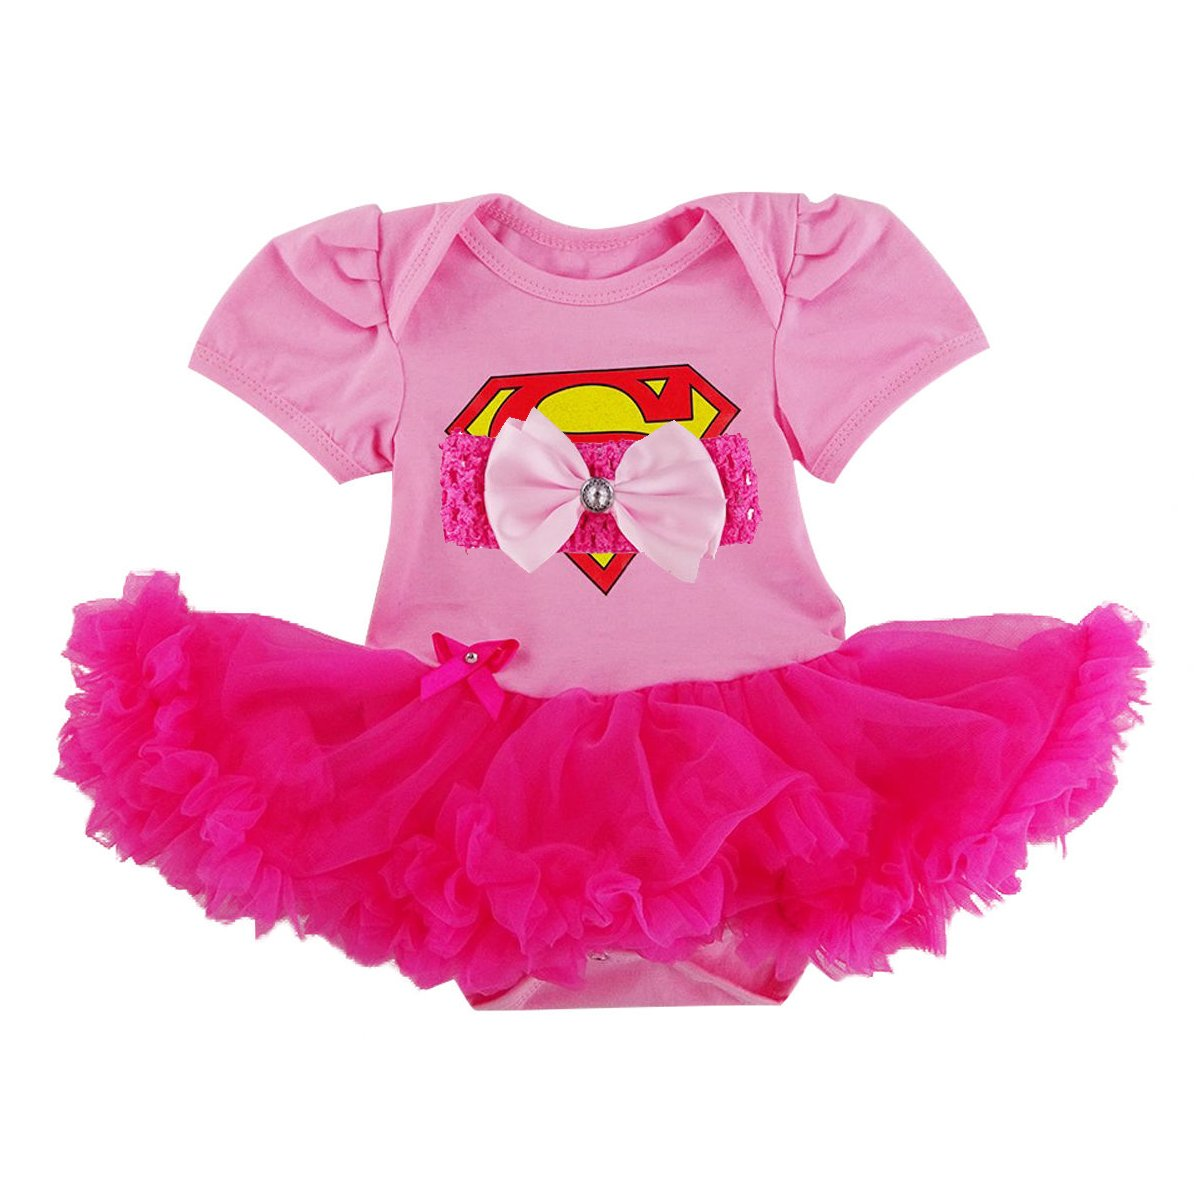 Laudmu Newborn Infant Baby Girl Supergirl Romper Dress,Headband Clothe set - Pink